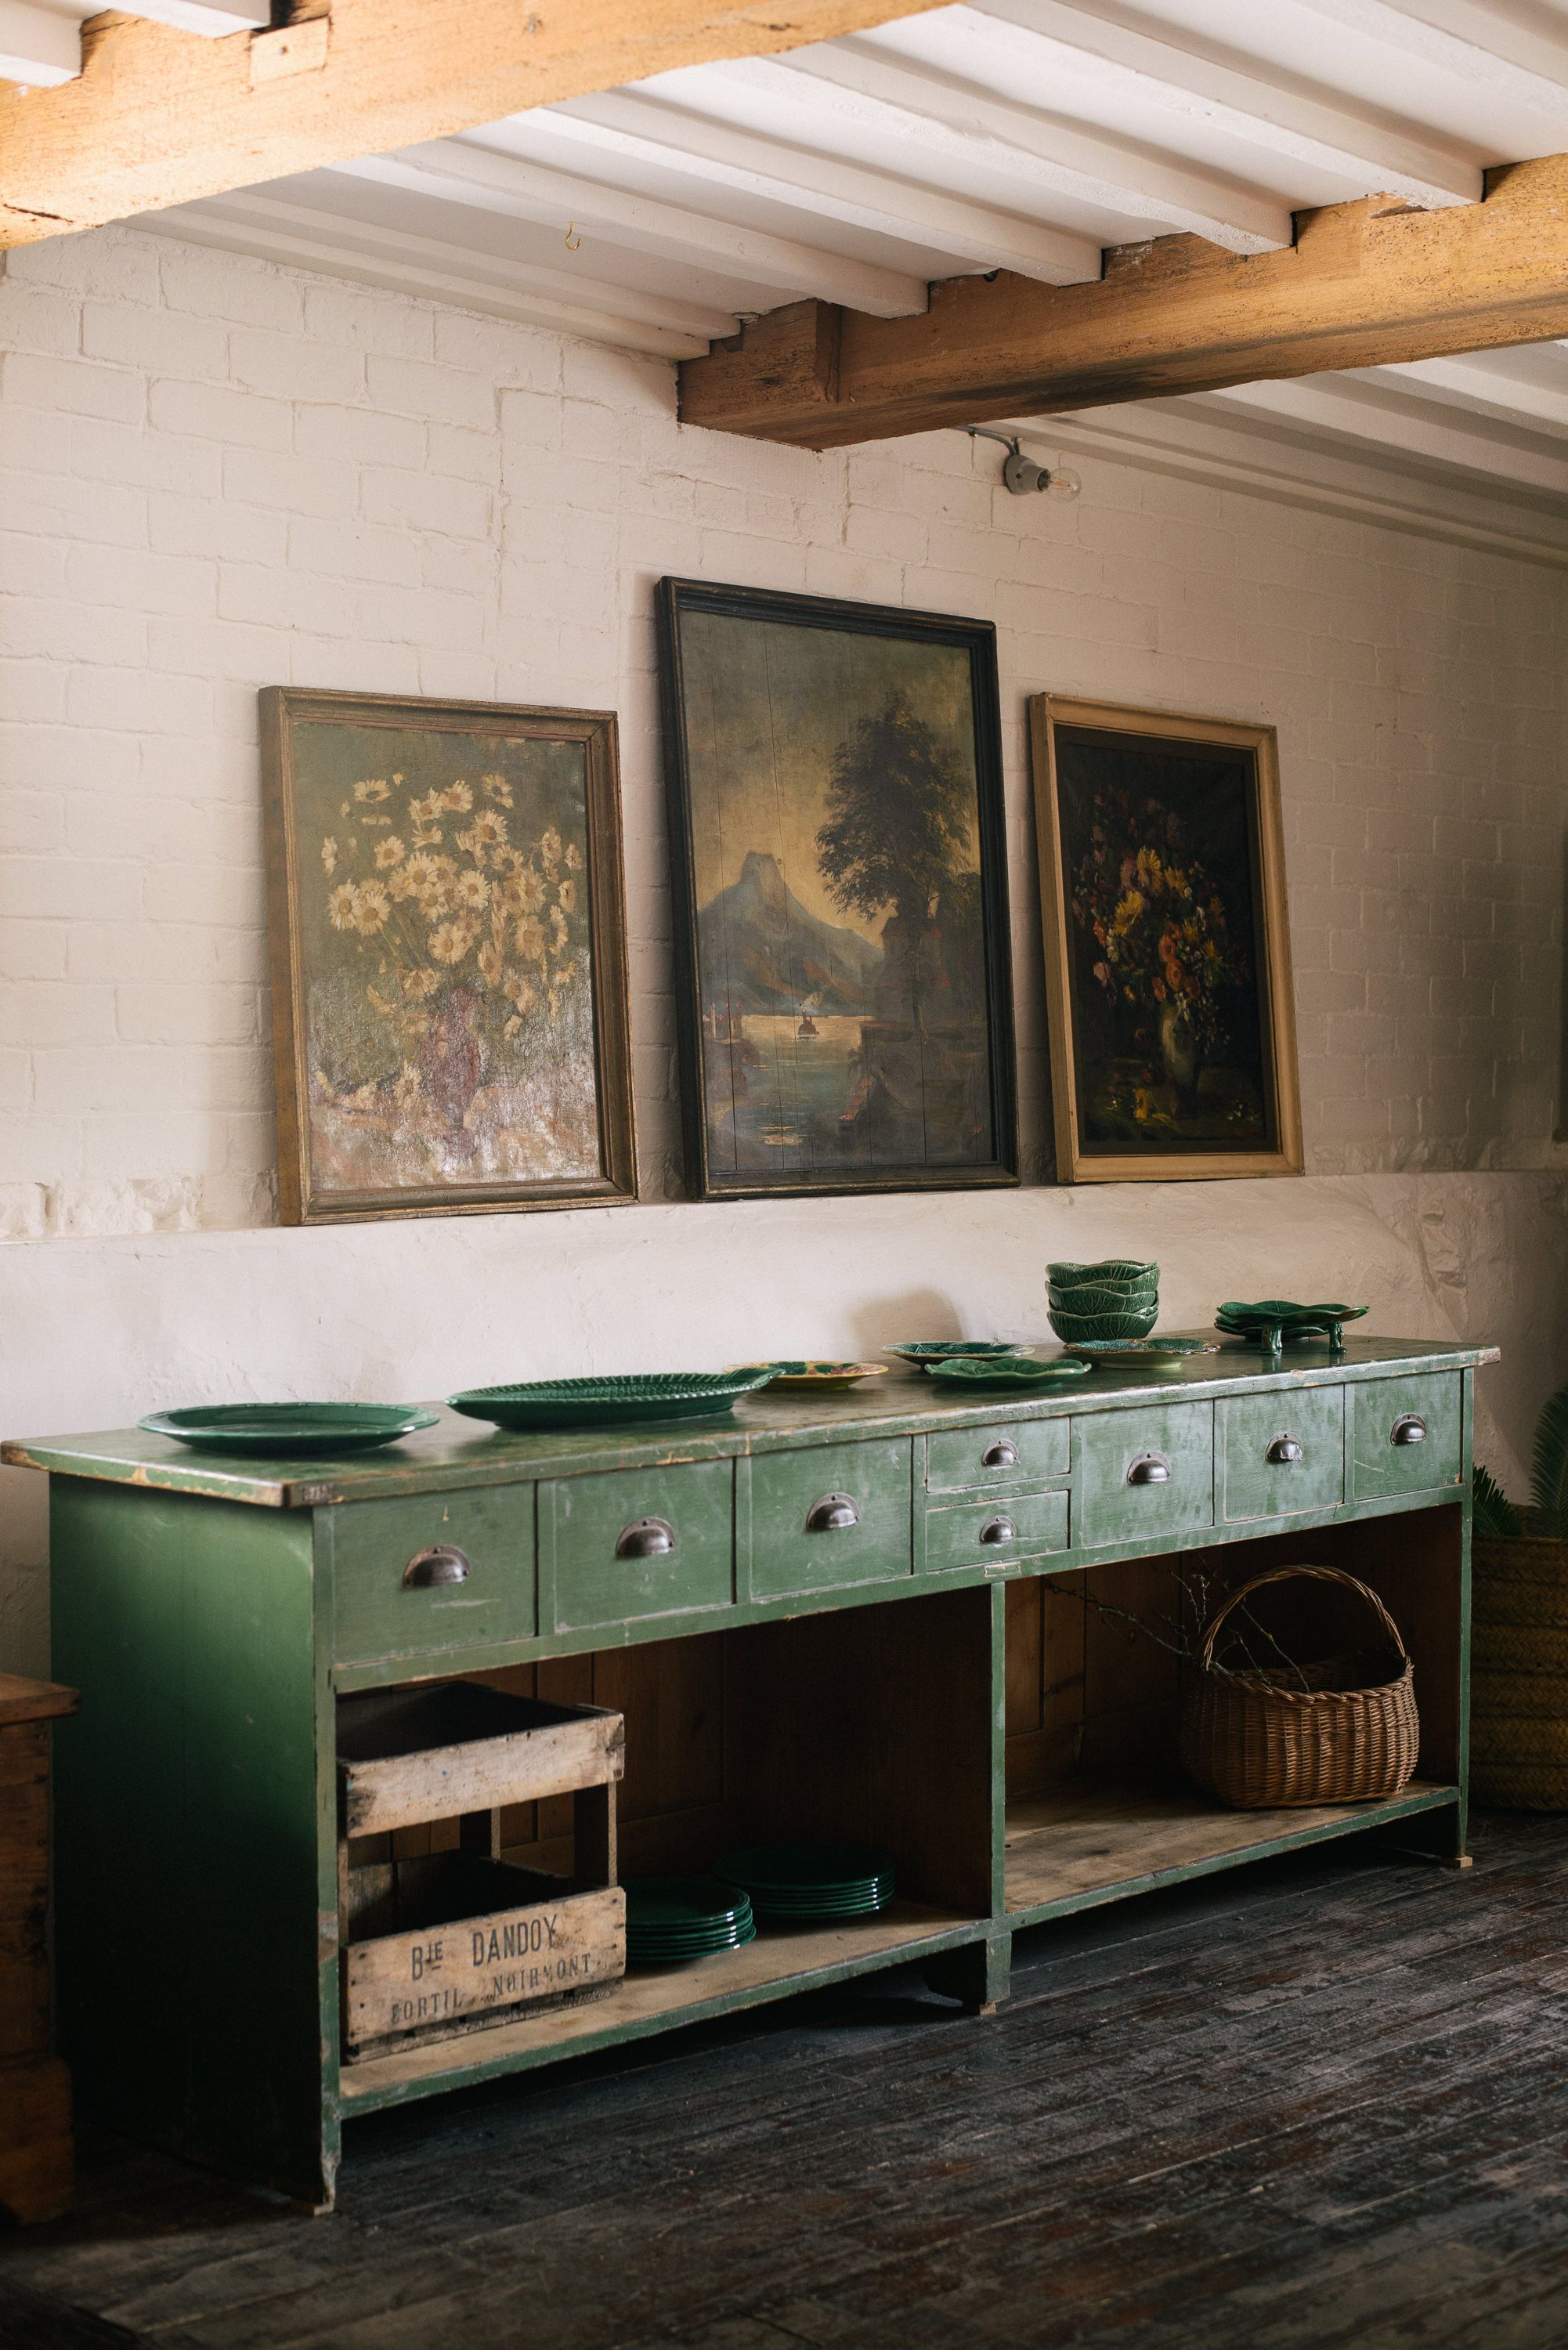 There are so many beautiful antique pieces and gifts for sale at our Cotes Mill showroom. This stunning green serving table would make a fantastic statement piece in any room. #DevolKitchens #Antique #Furniture #ForSale #DistressedFurniture #ServingTable